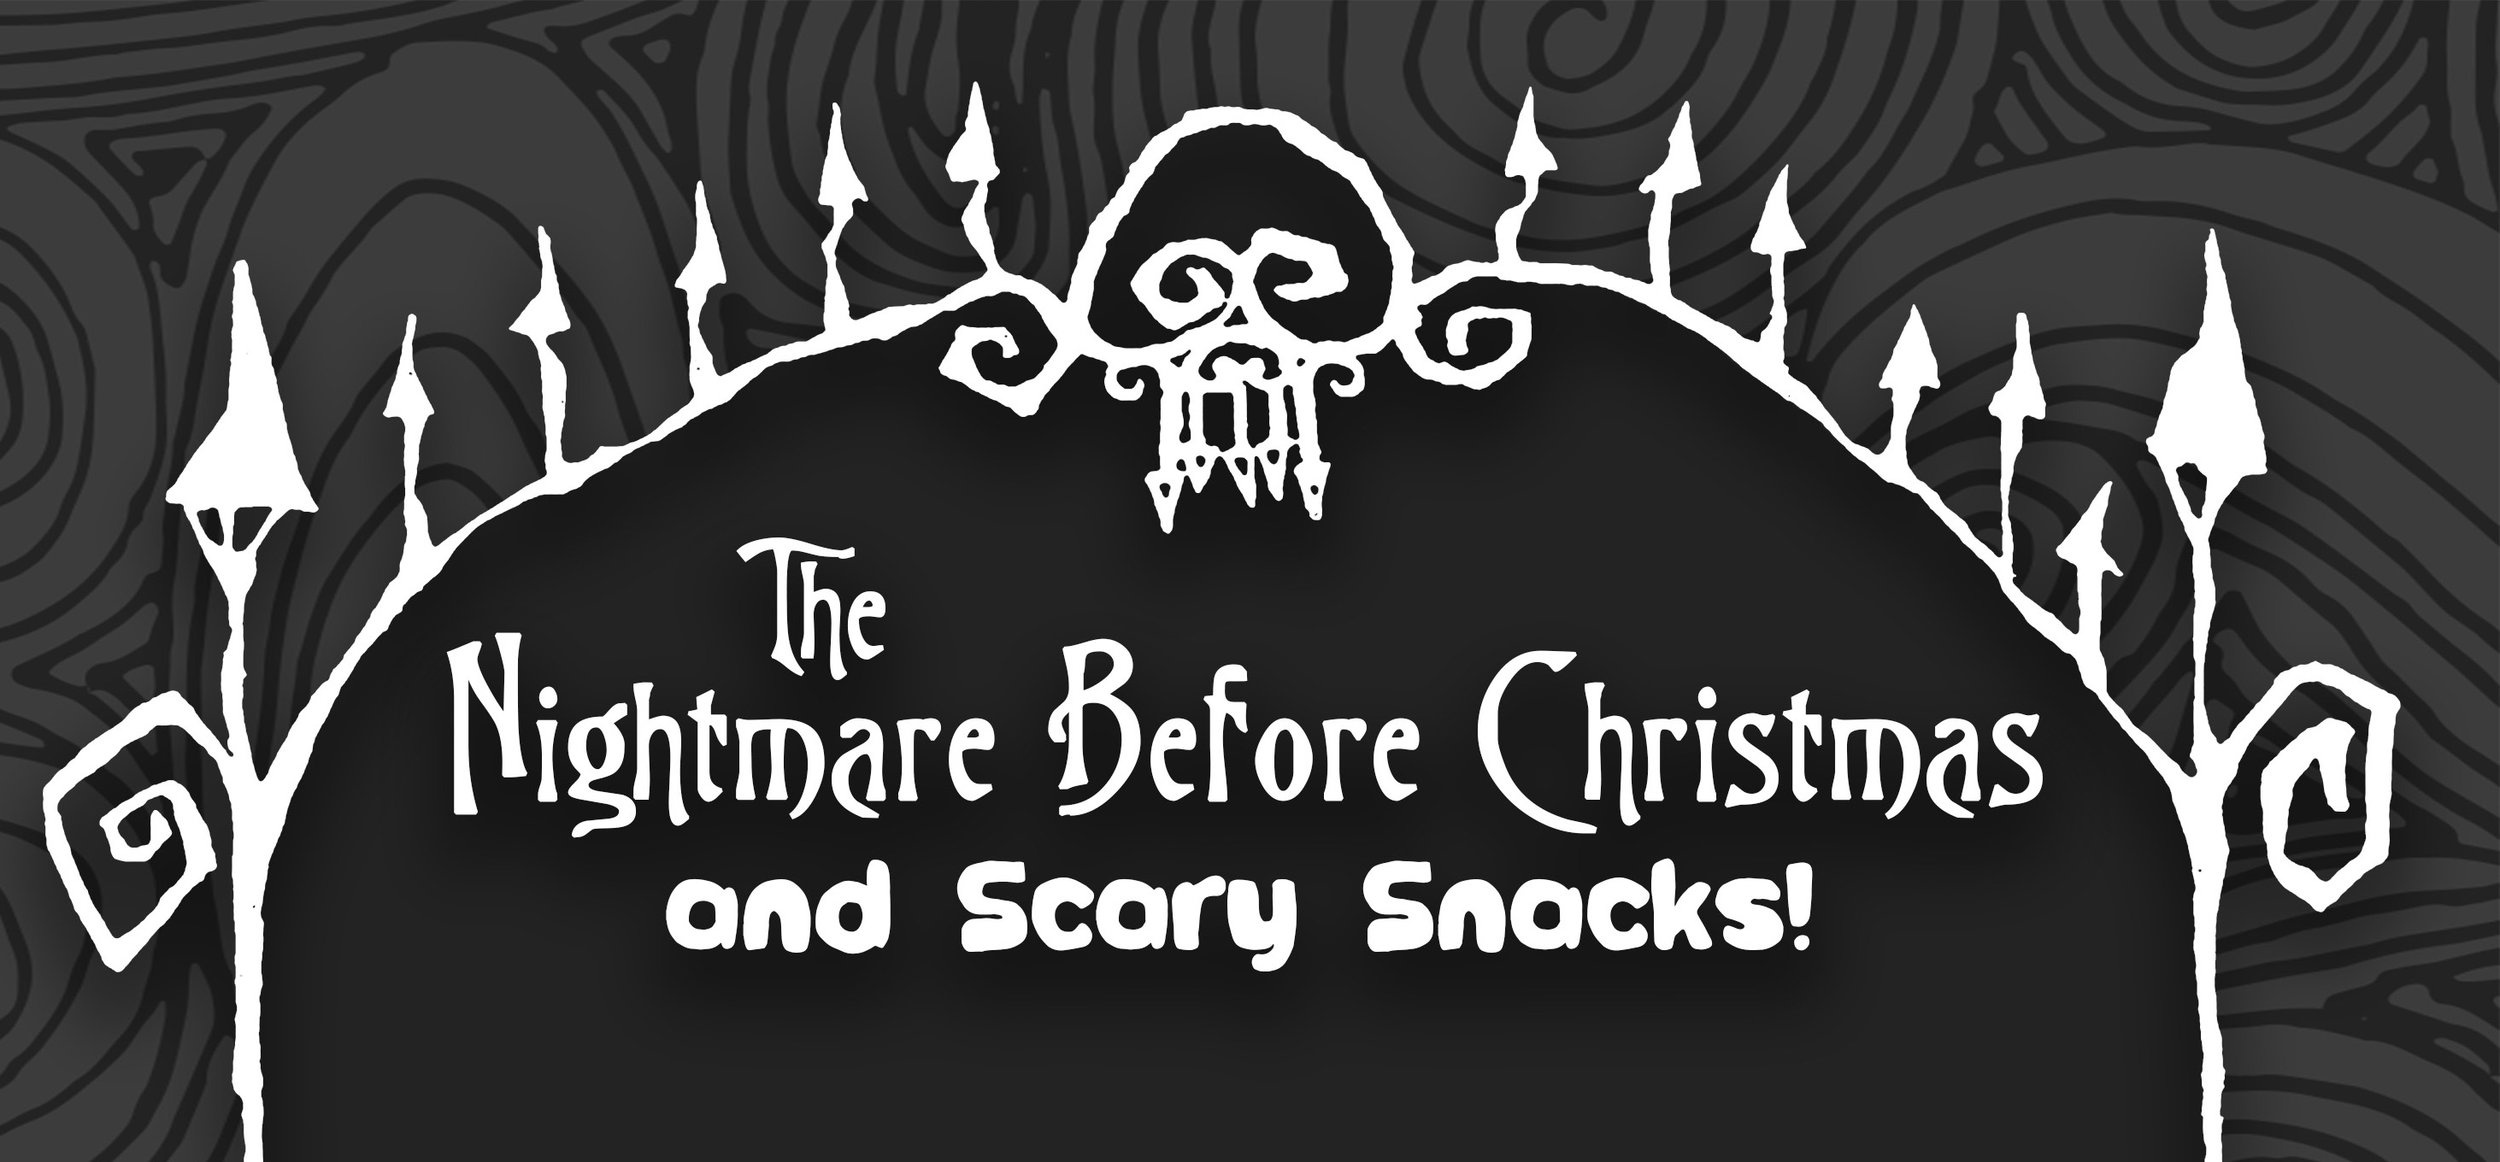 The Nightmare Before Christmas and Scary Snacks - Alliance Center ...